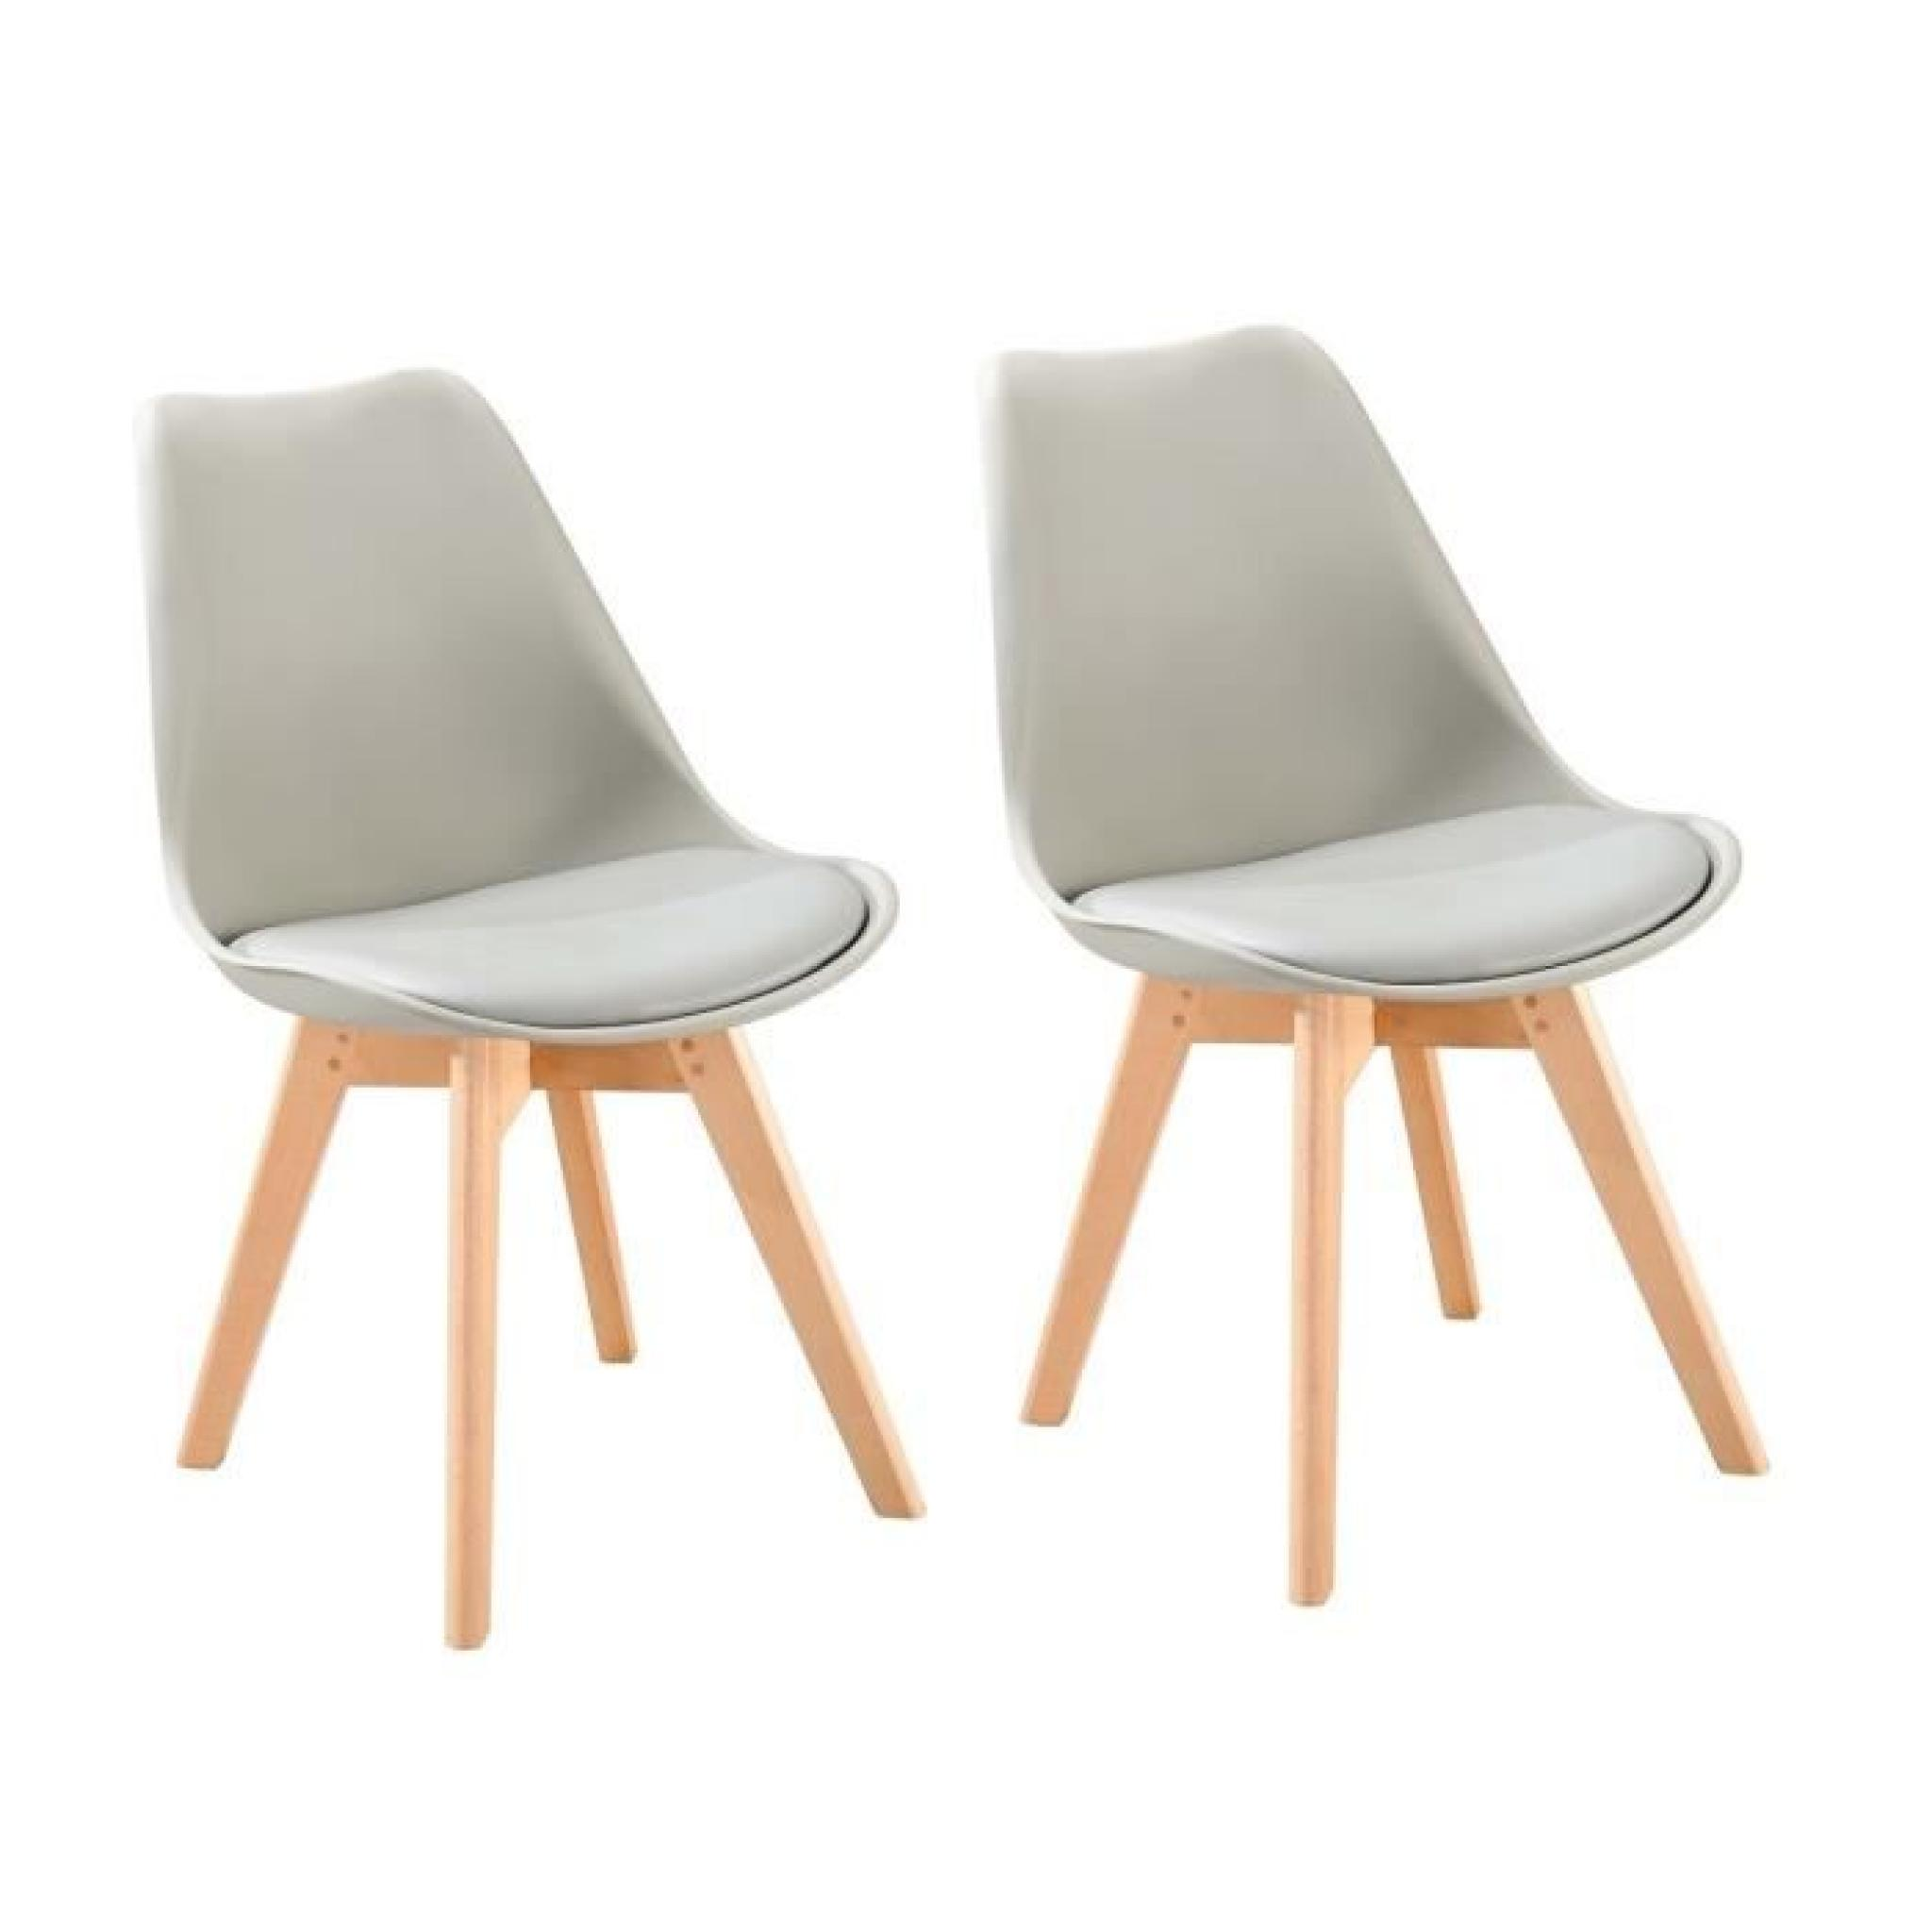 Lot De Chaises Scandinaves Bjorn Lot De 2 Chaises Scandinaves De Salle à Manger